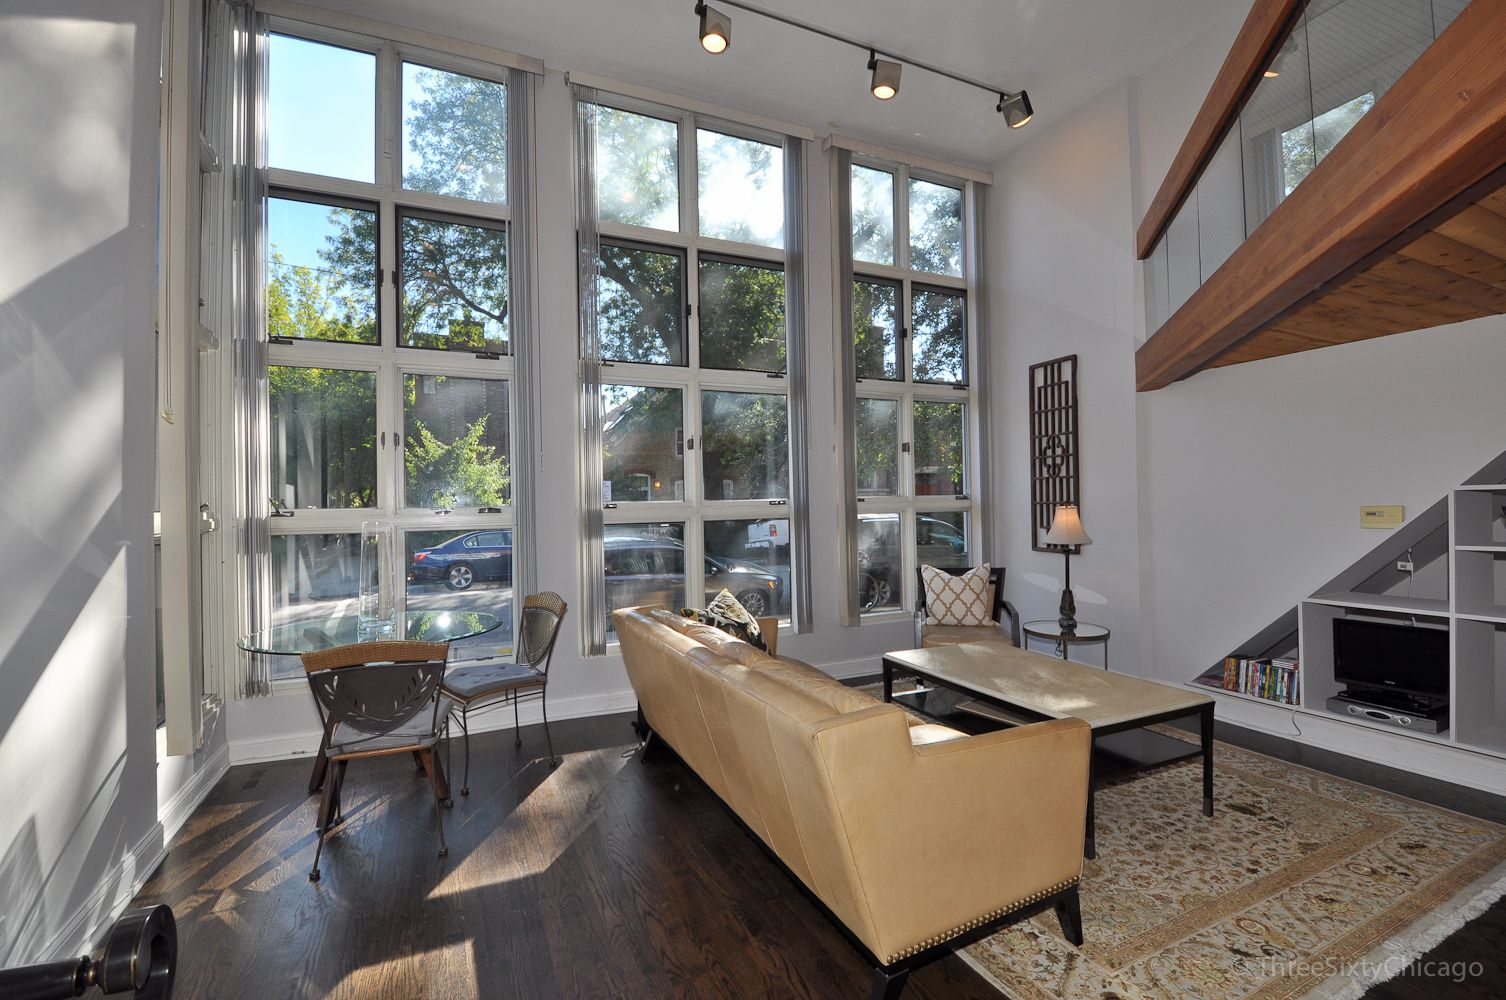 angeles ca way listings our park in medium los sale us condos pomona county carriage for lincoln condo homes